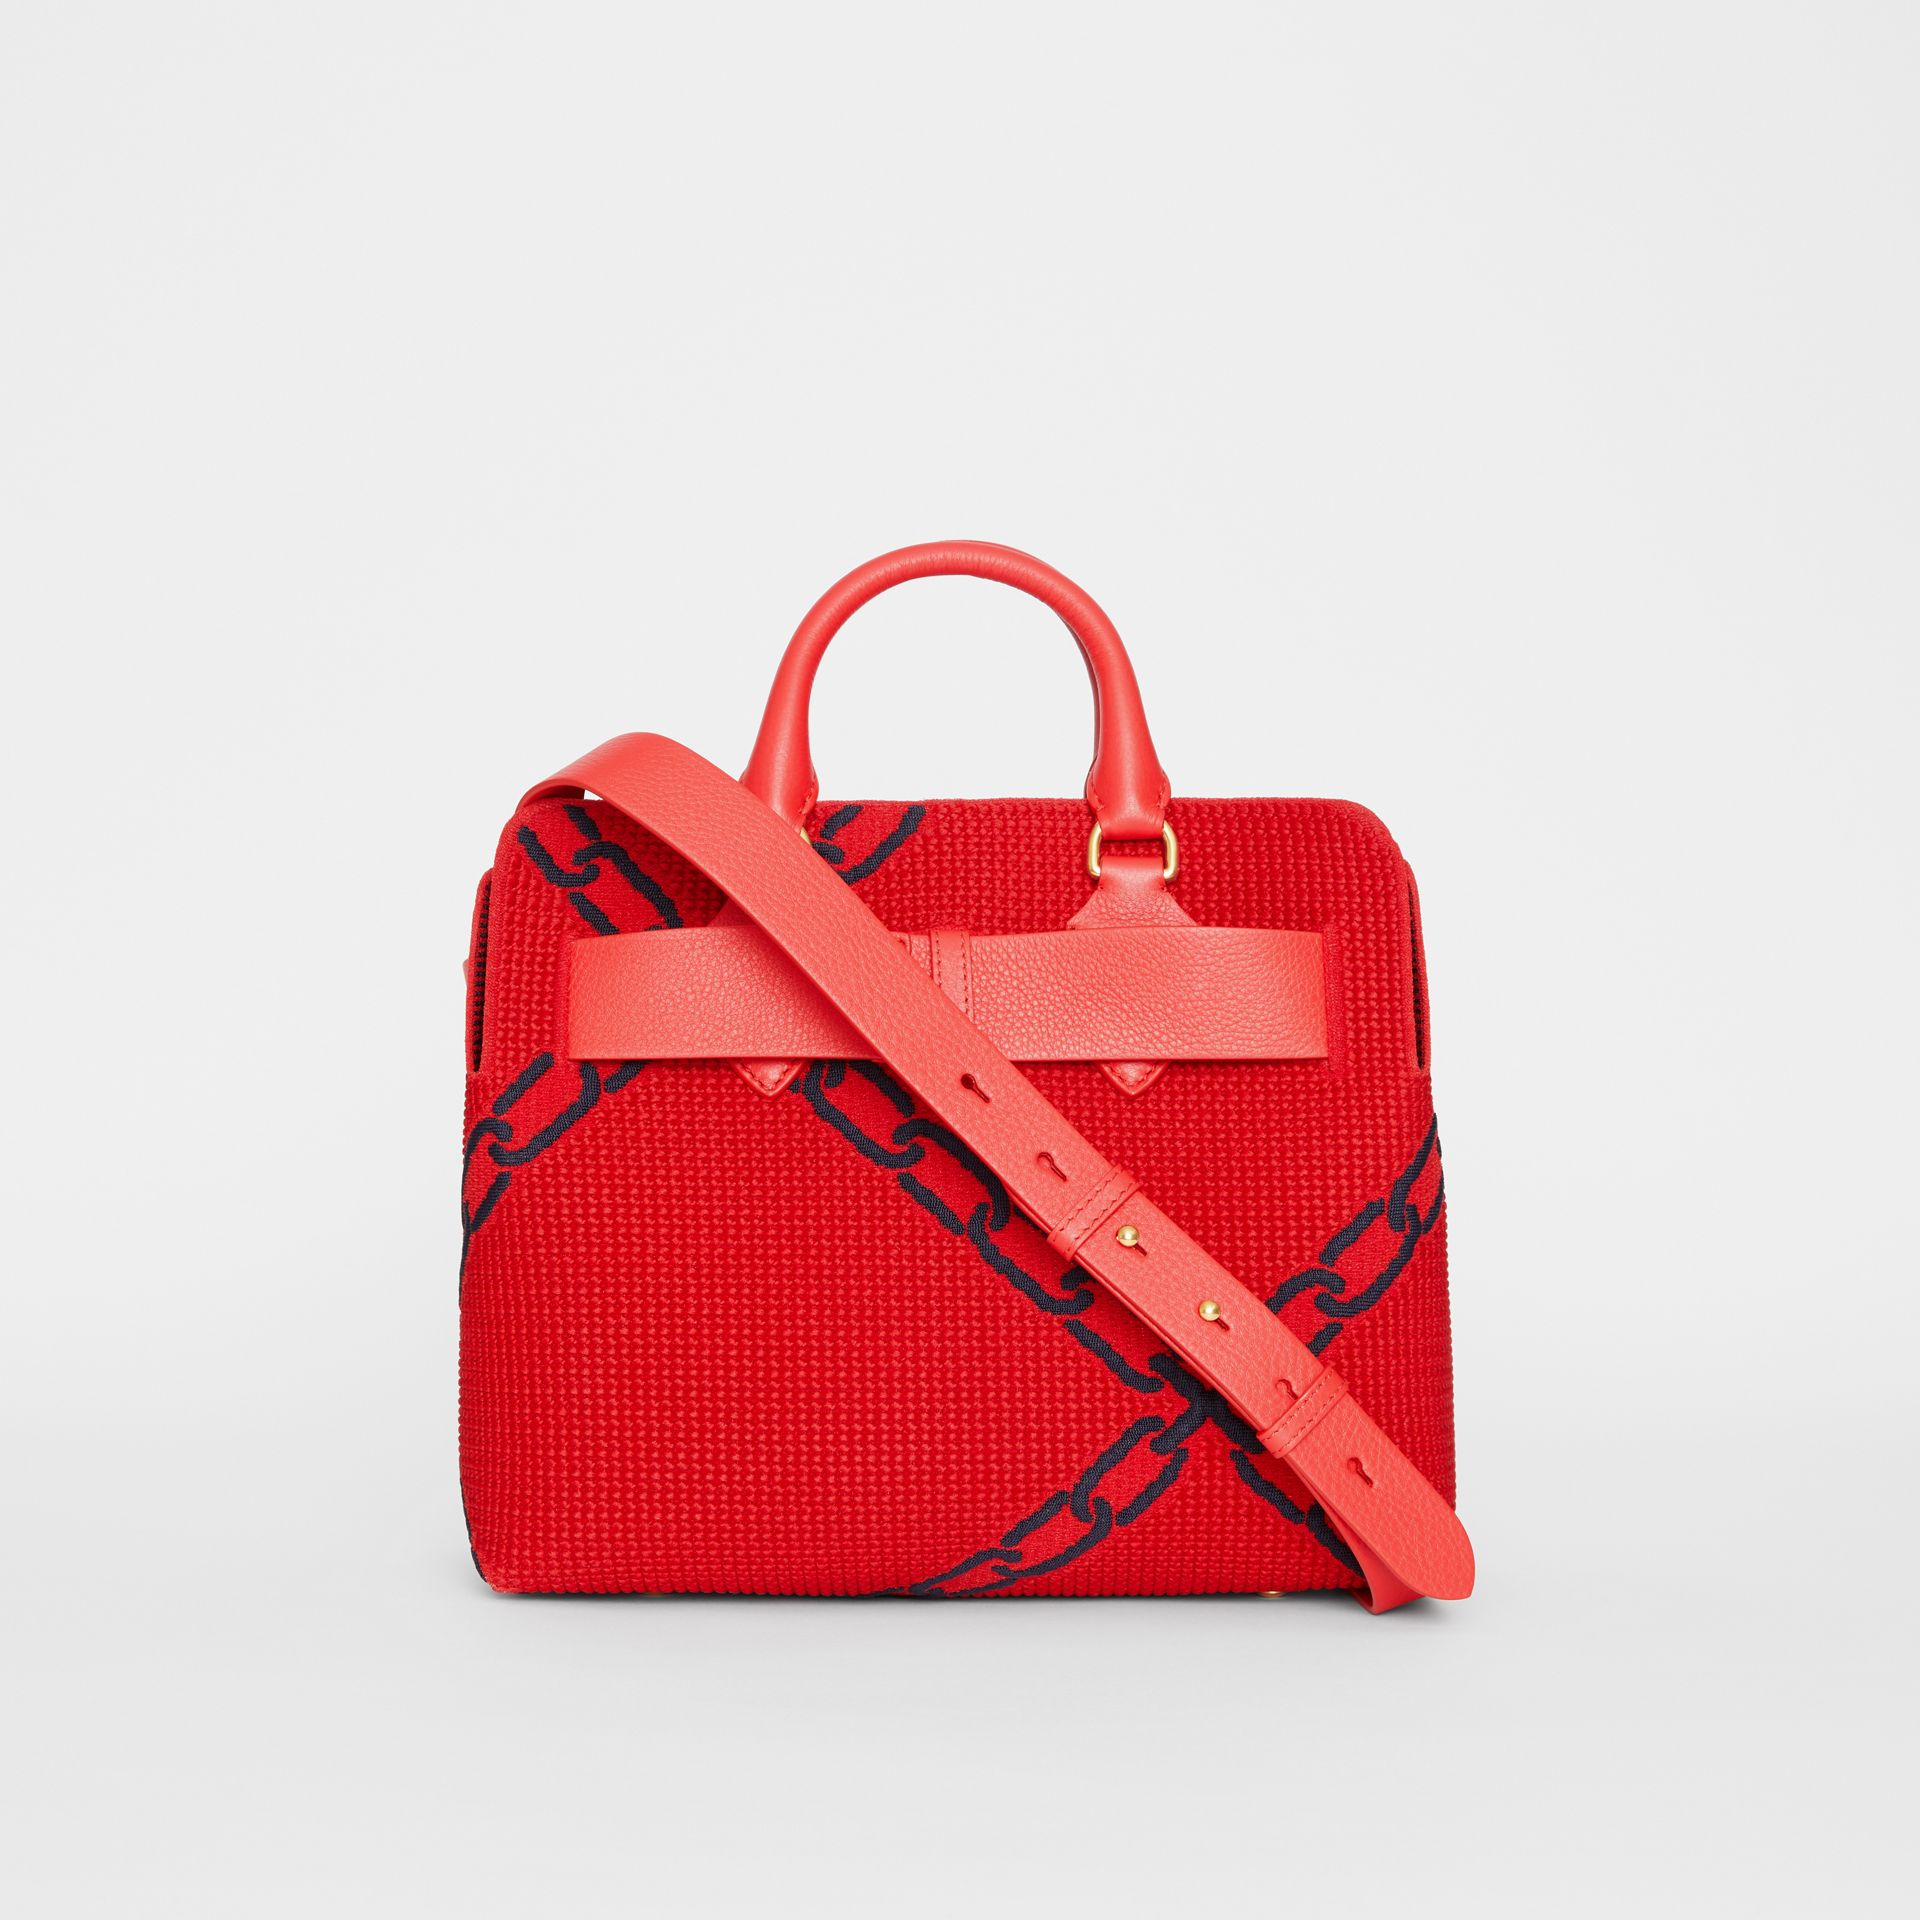 The Small Belt Bag mit Kettenmuster in Strickoptik (Leuchtendes Rot/blau) - Damen | Burberry - Galerie-Bild 5